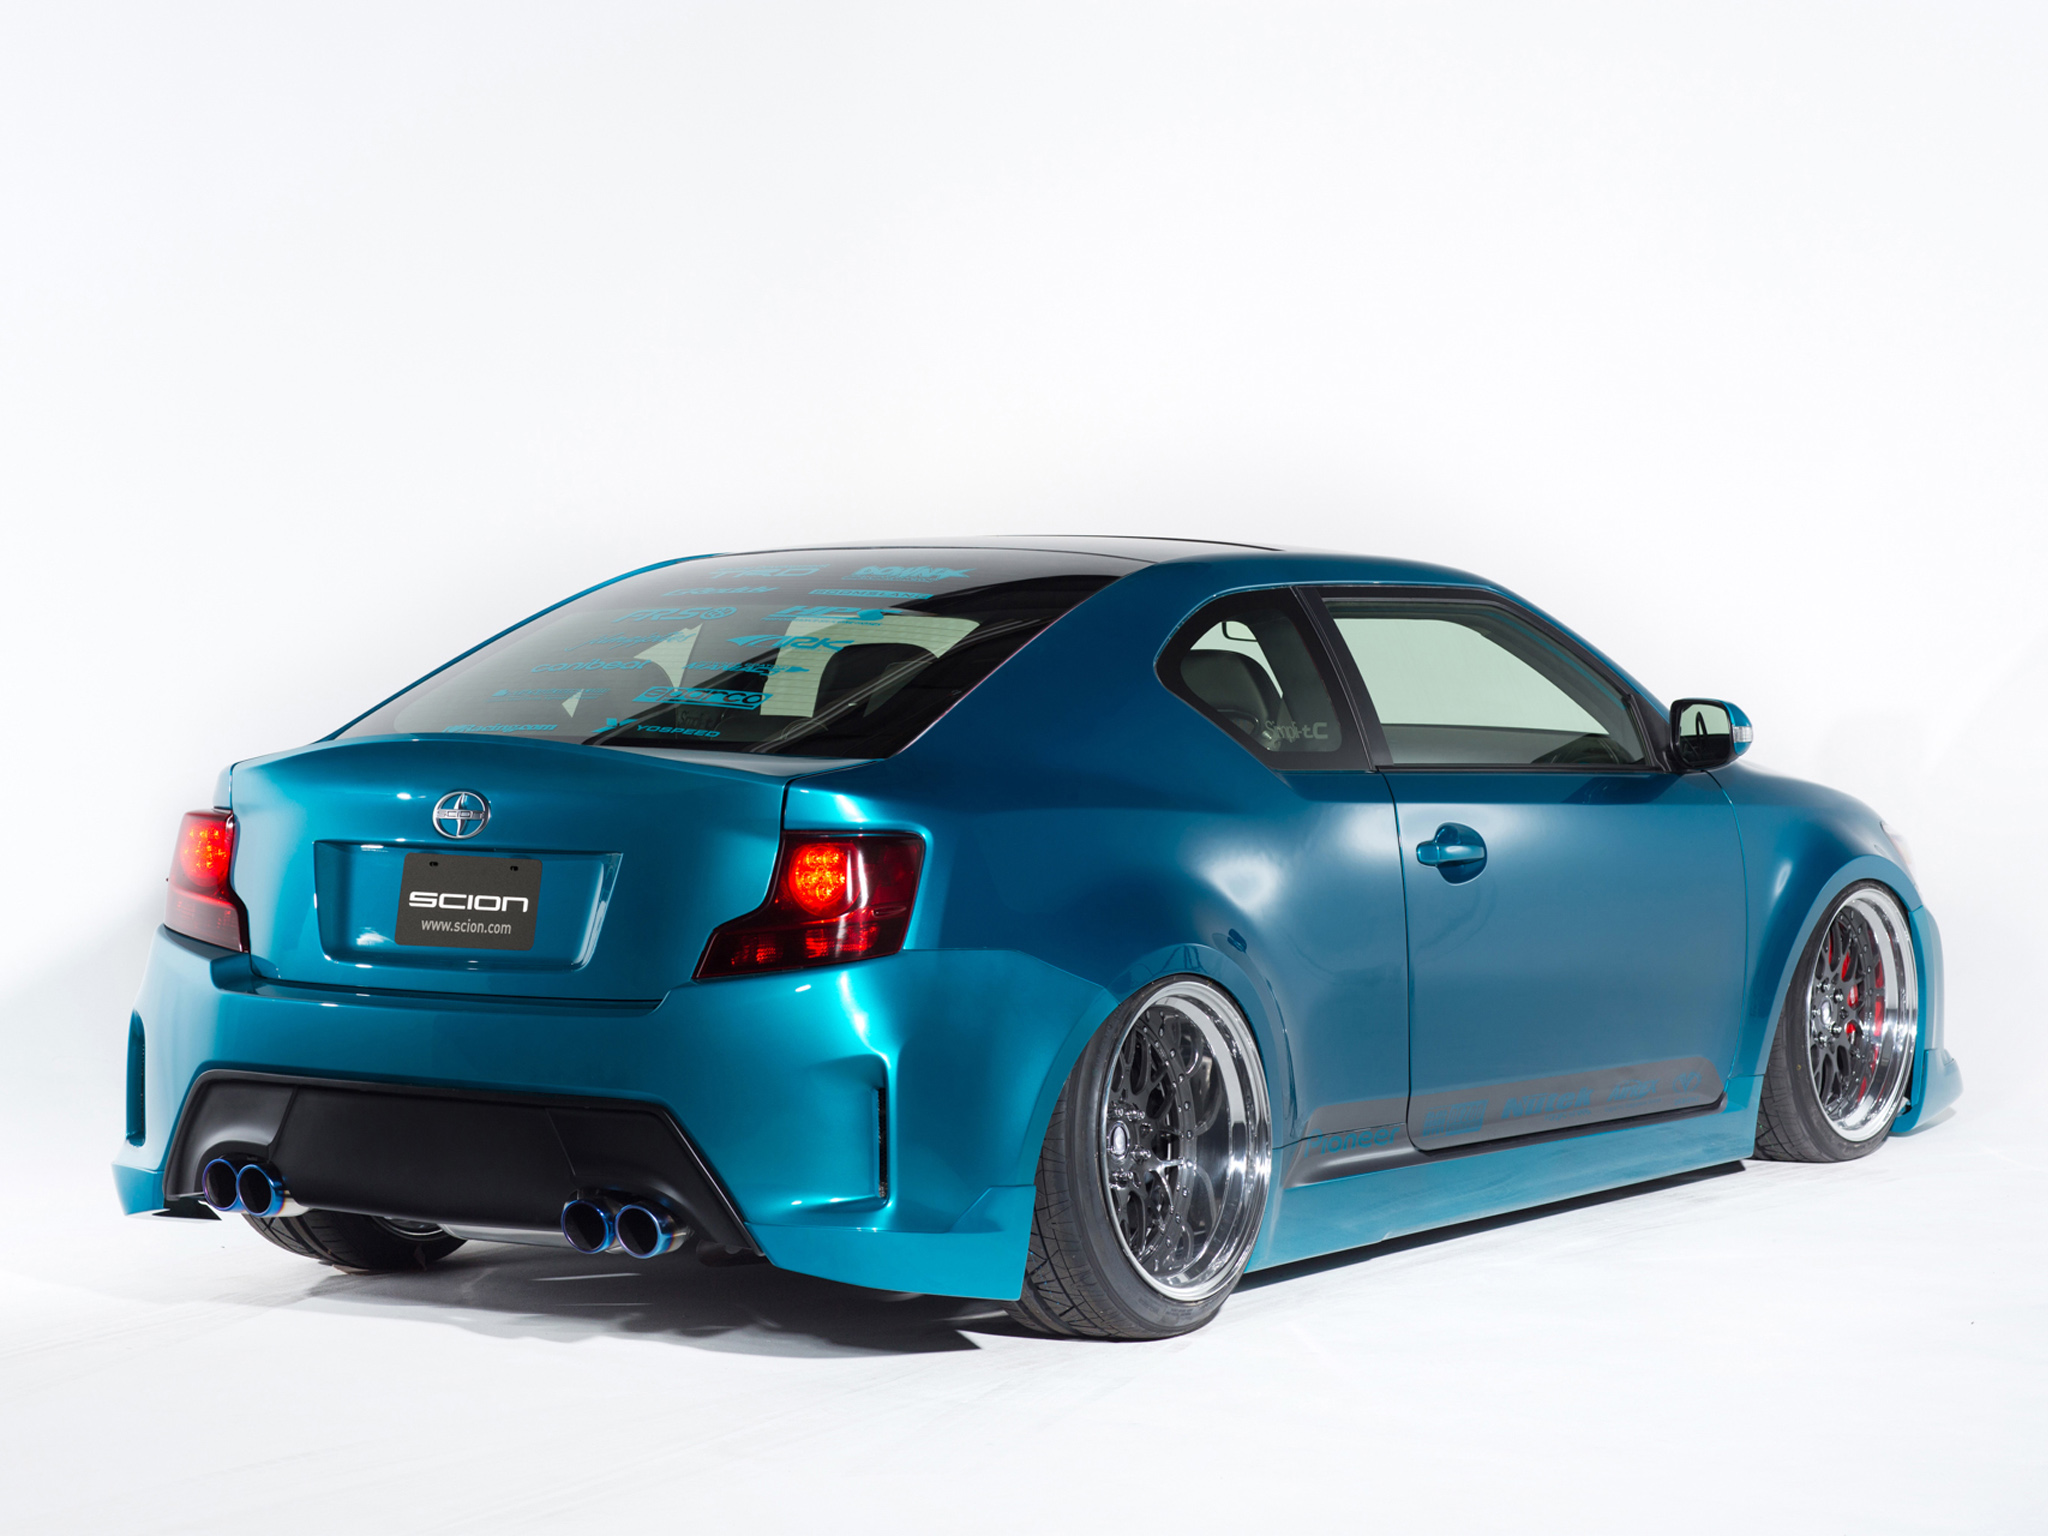 Scion Tc 2014 Tuning >> 2014 Scion Simpli-tC by Young Tea tuning f wallpaper | 2048x1536 | 168763 | WallpaperUP